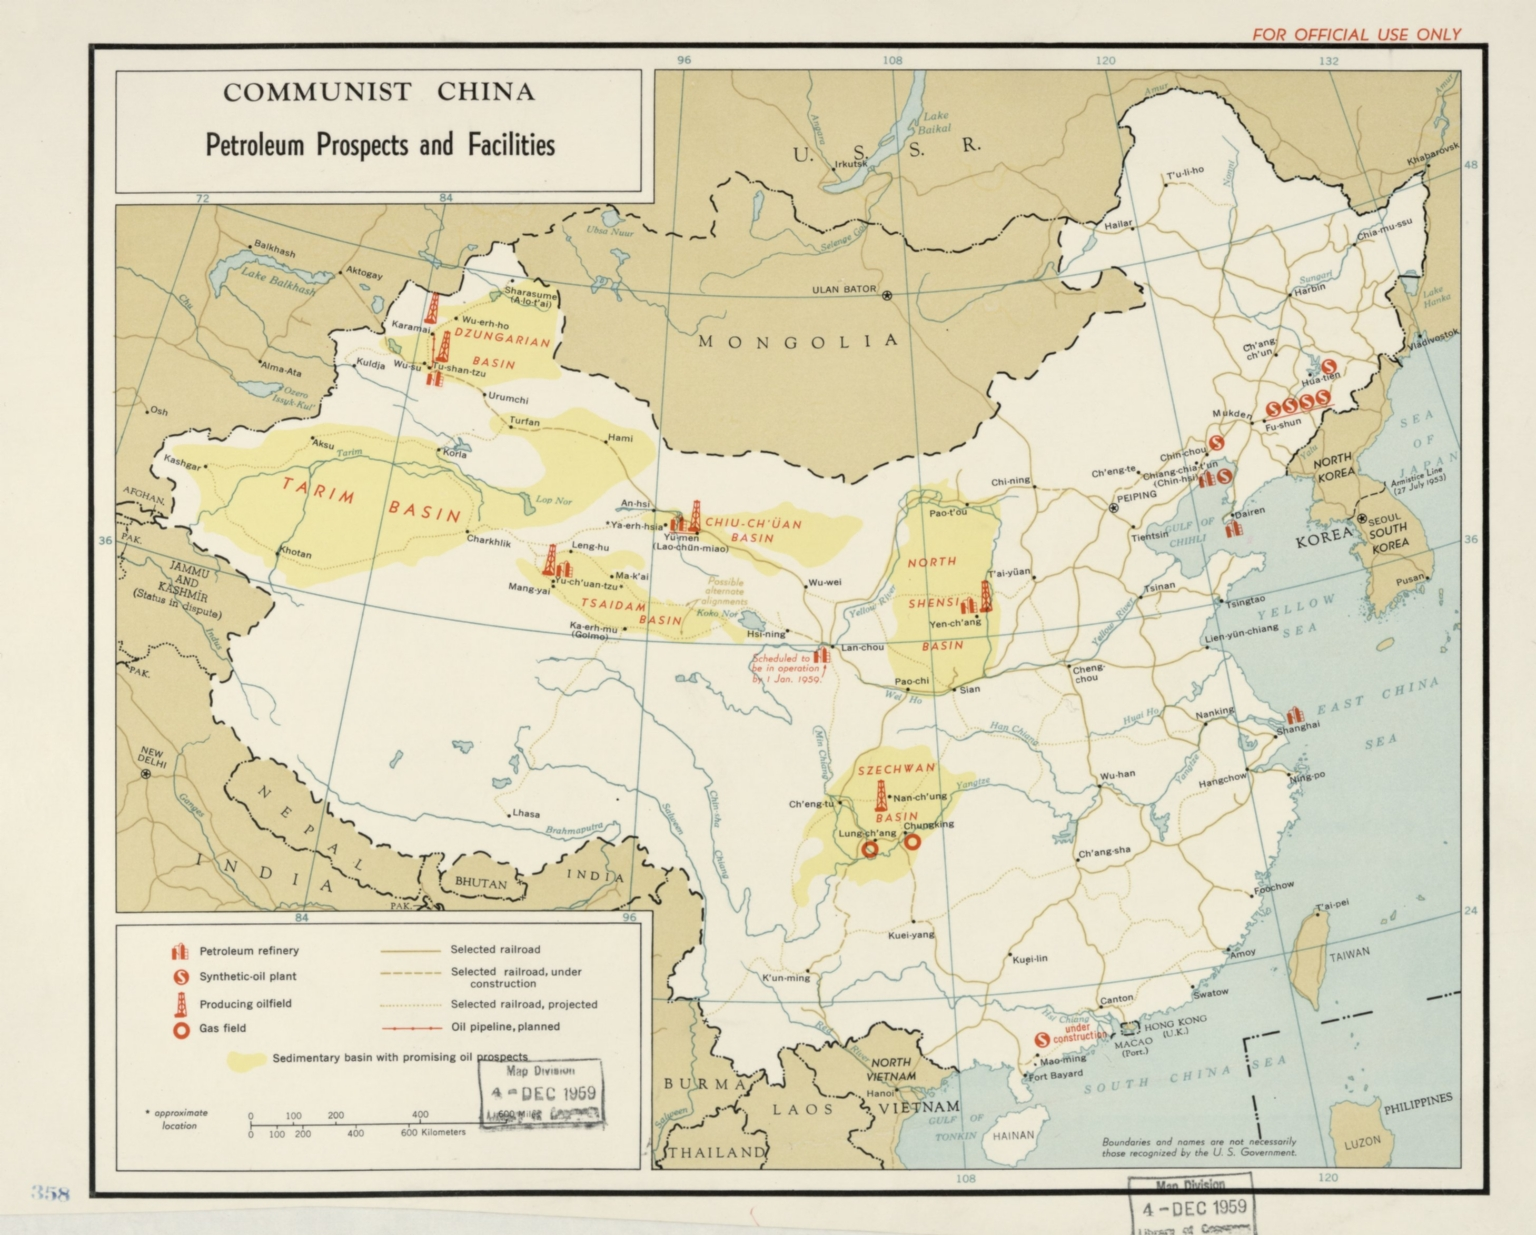 Communist China, petroleum prospects and facilities